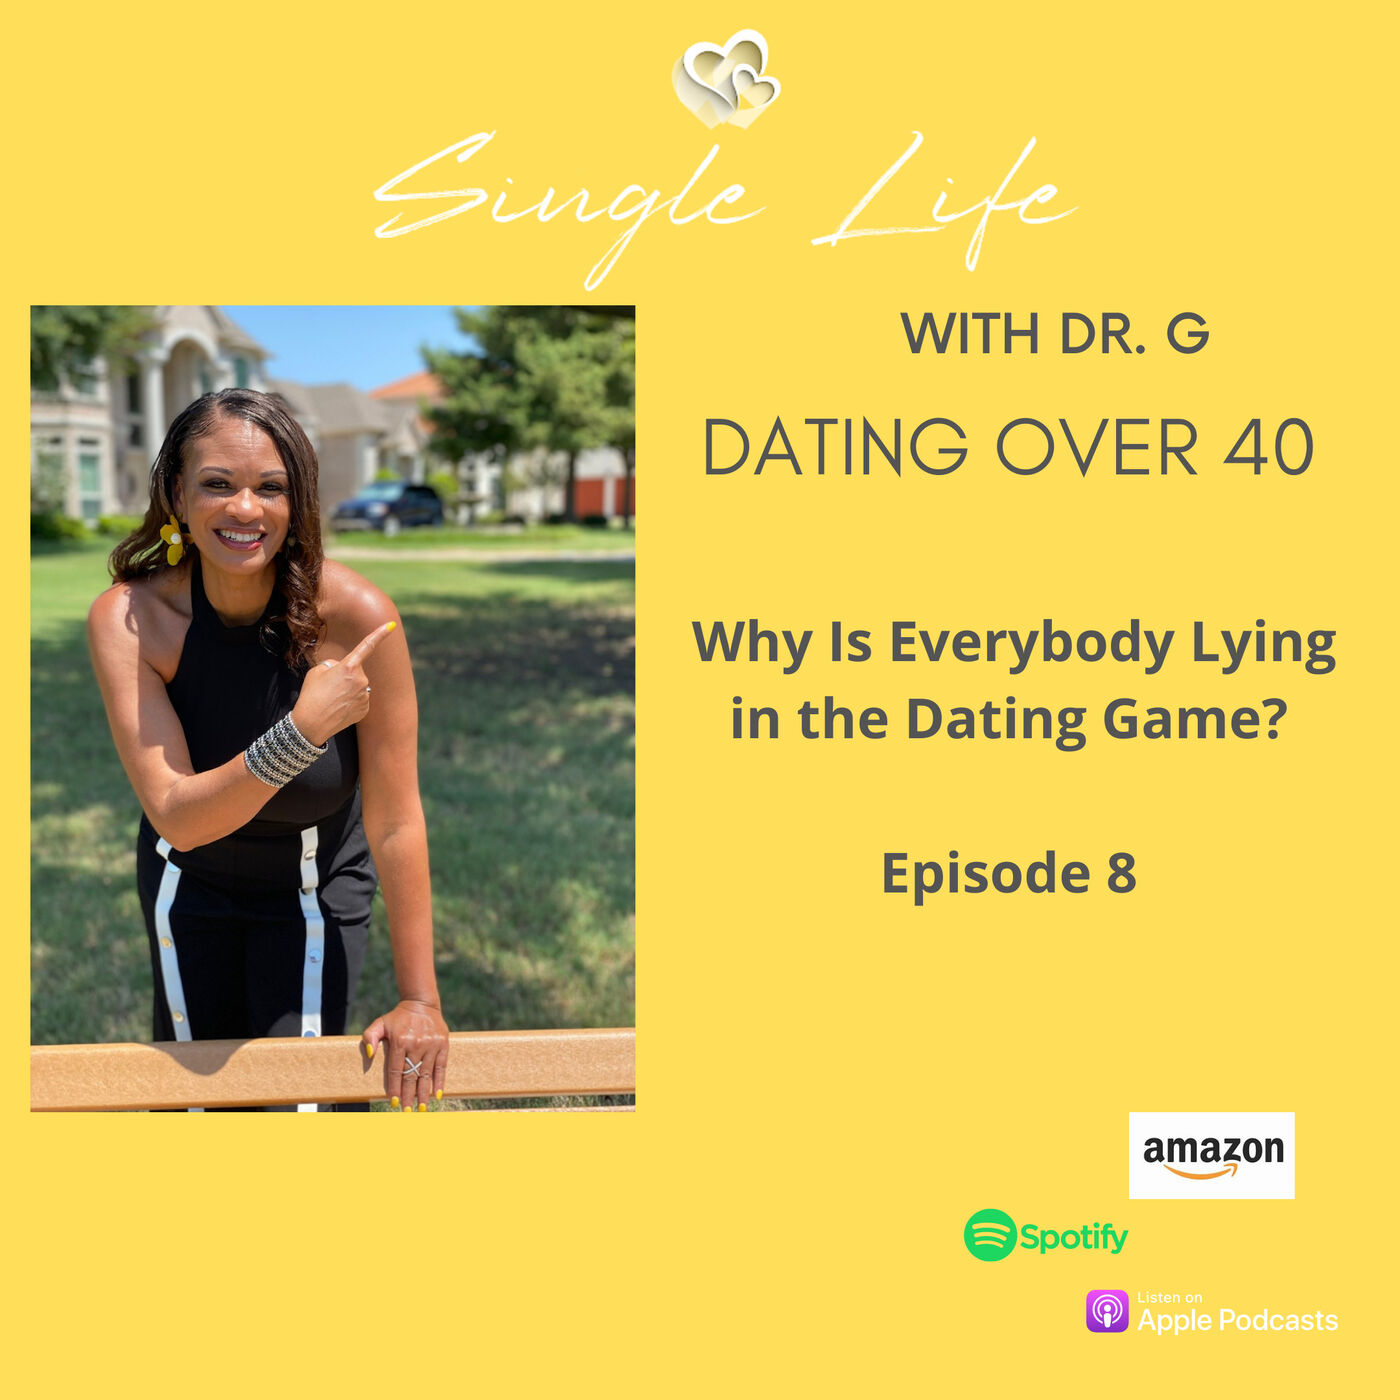 Why Are So Many People Lying in the Dating Game?